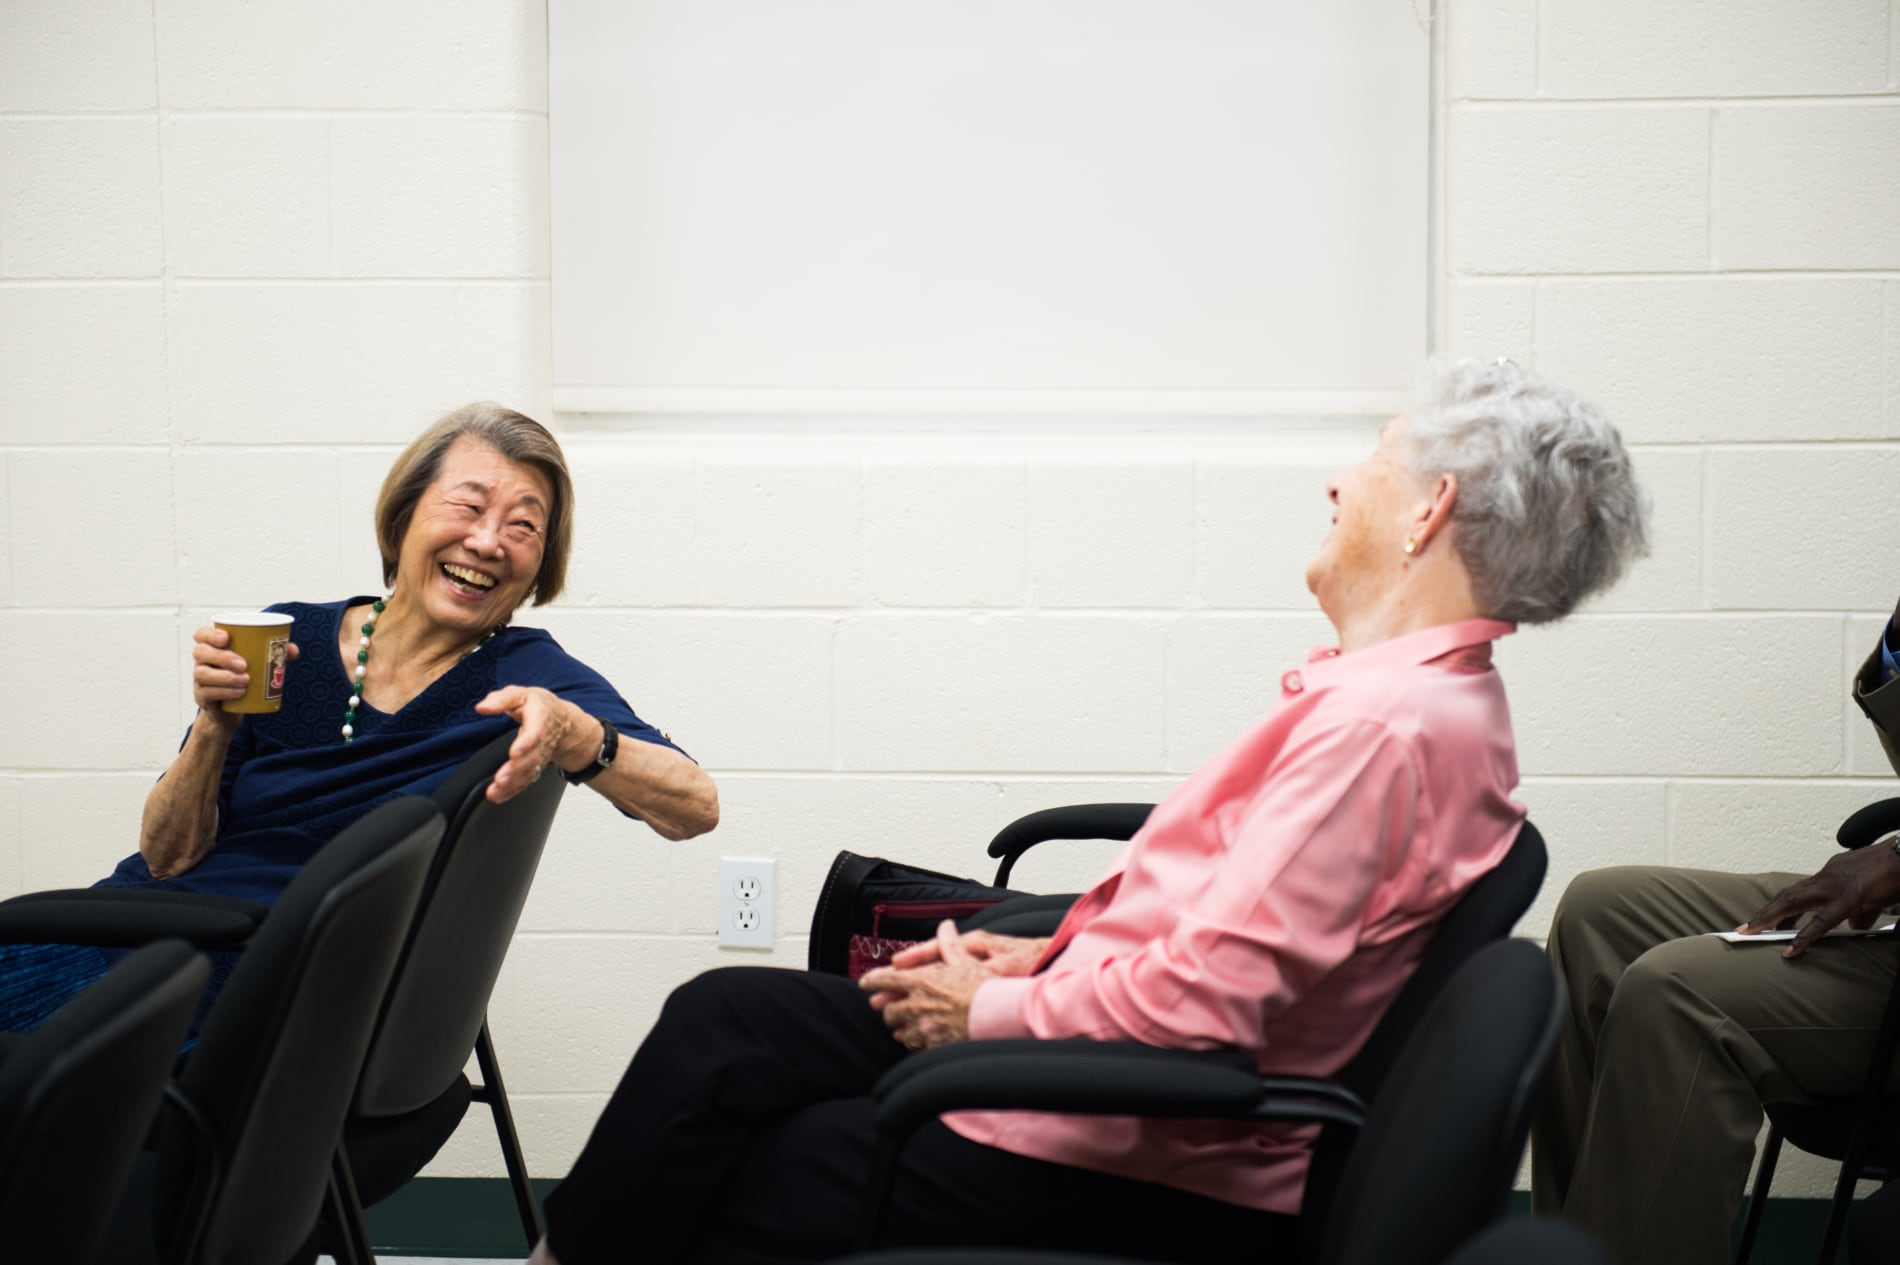 Two women laugh during a Bible study